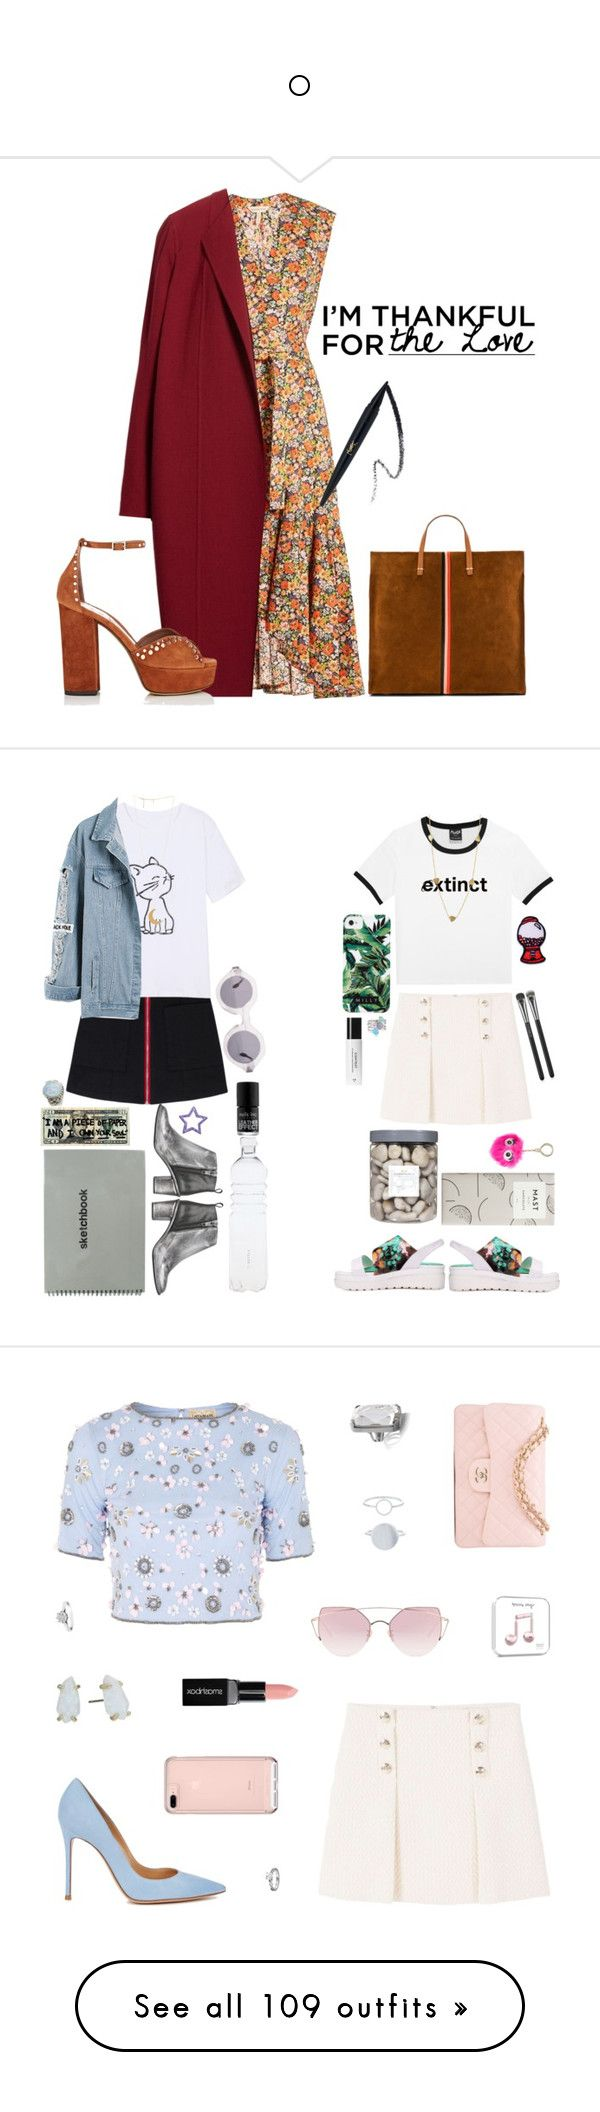 """""""o"""" by magesticlover ❤ liked on Polyvore featuring Rebecca Taylor, Lafayette 148 New York, Tabitha Simmons, Clare V., Milly, MANGO, American Apparel, Context, Miista and MAC Cosmetics"""